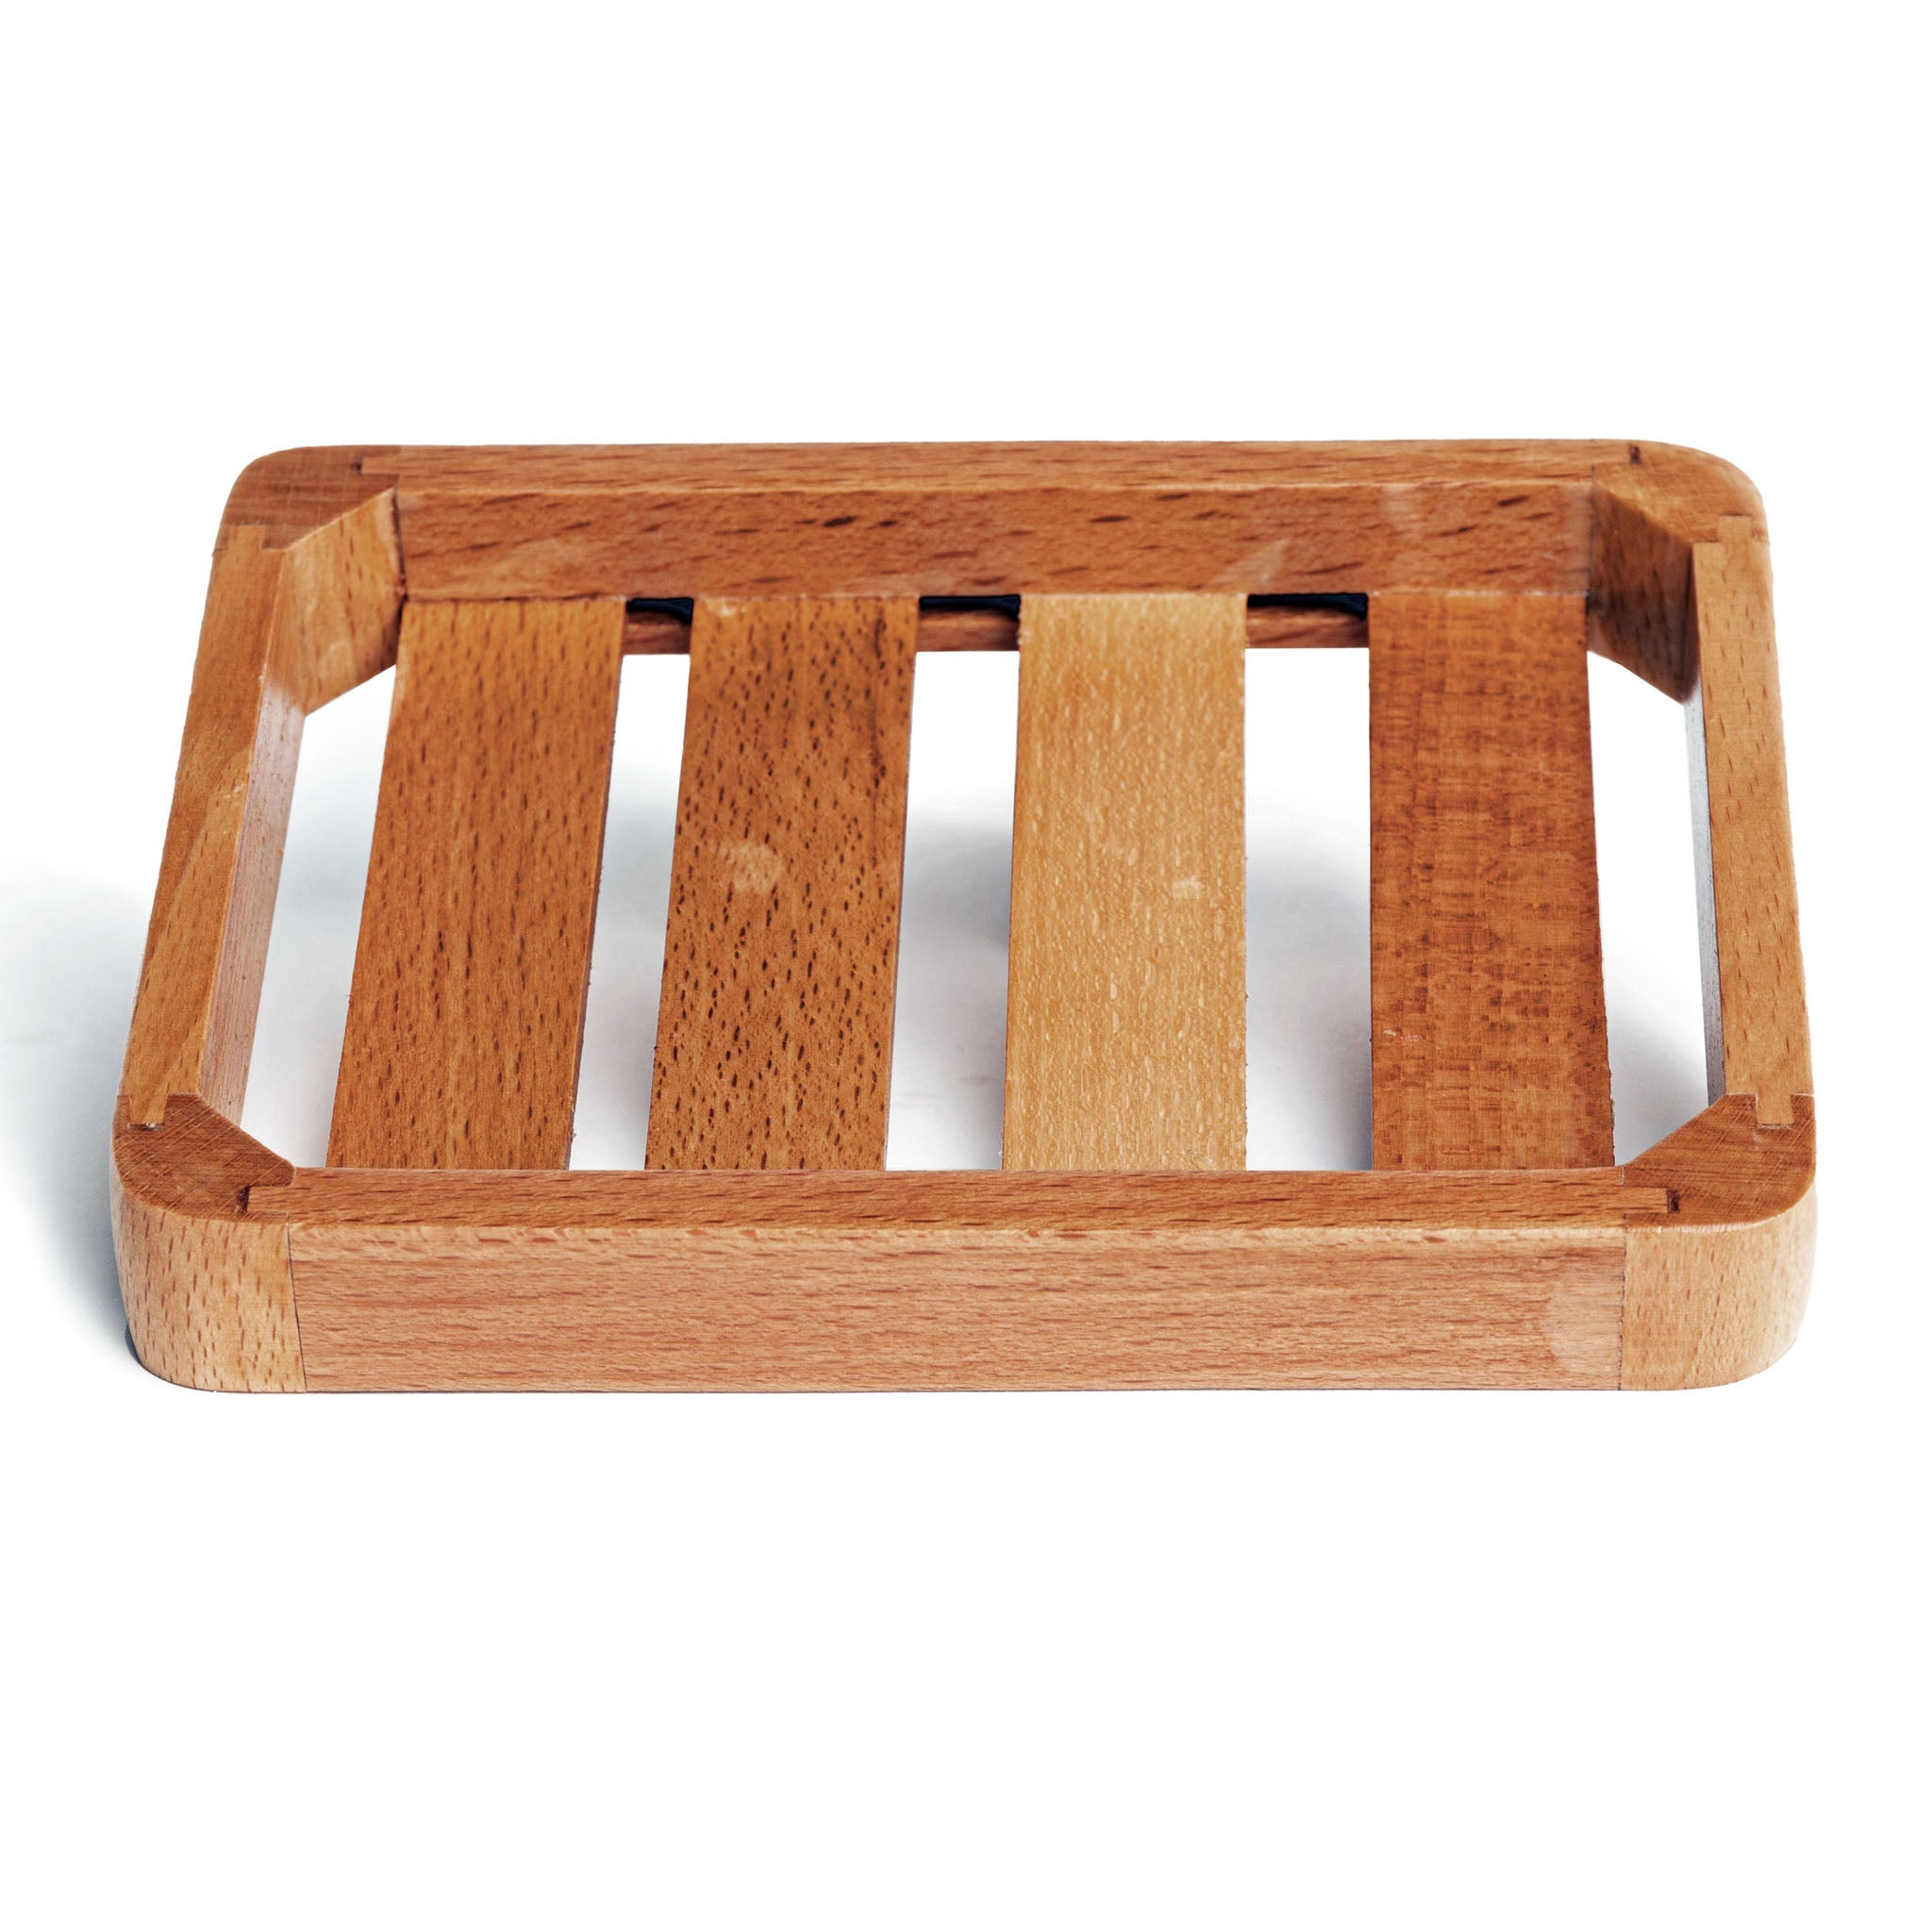 Wood Soap Dish / Soap Tray